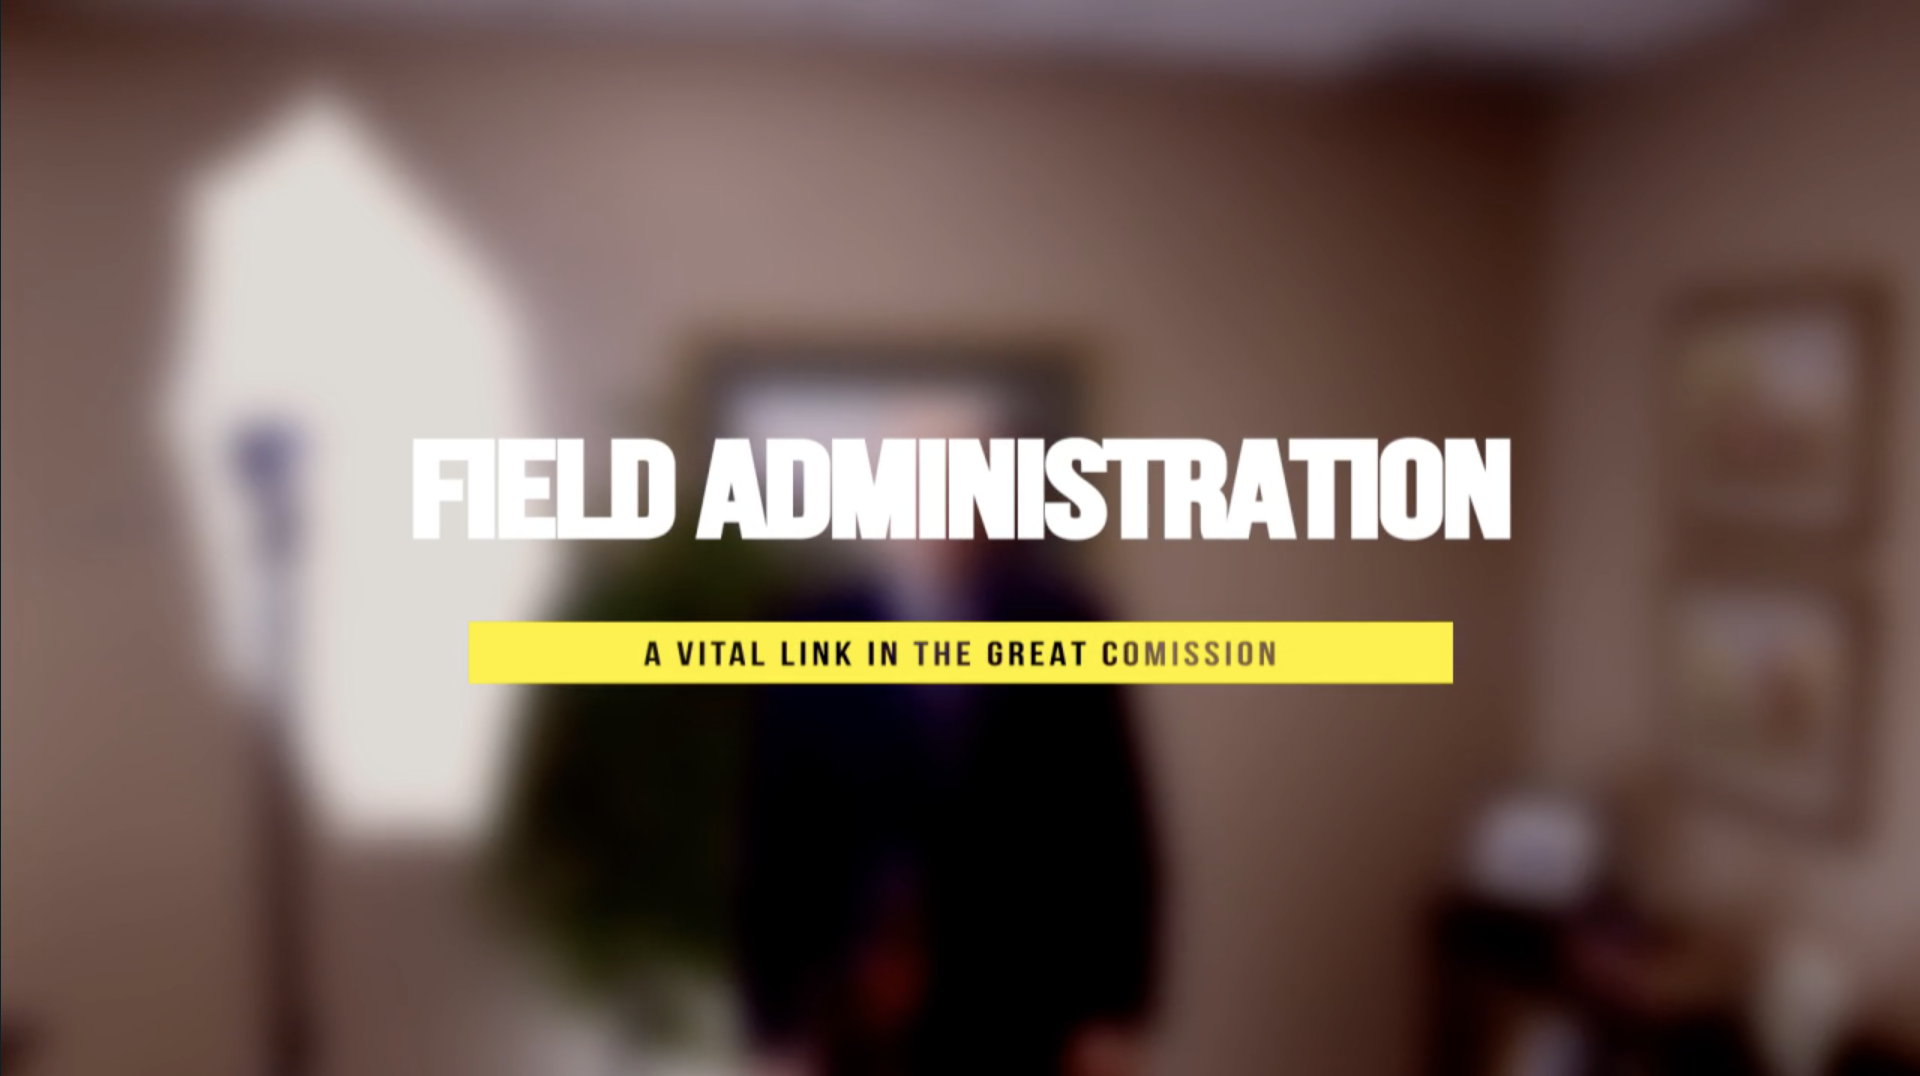 Field Administration Film